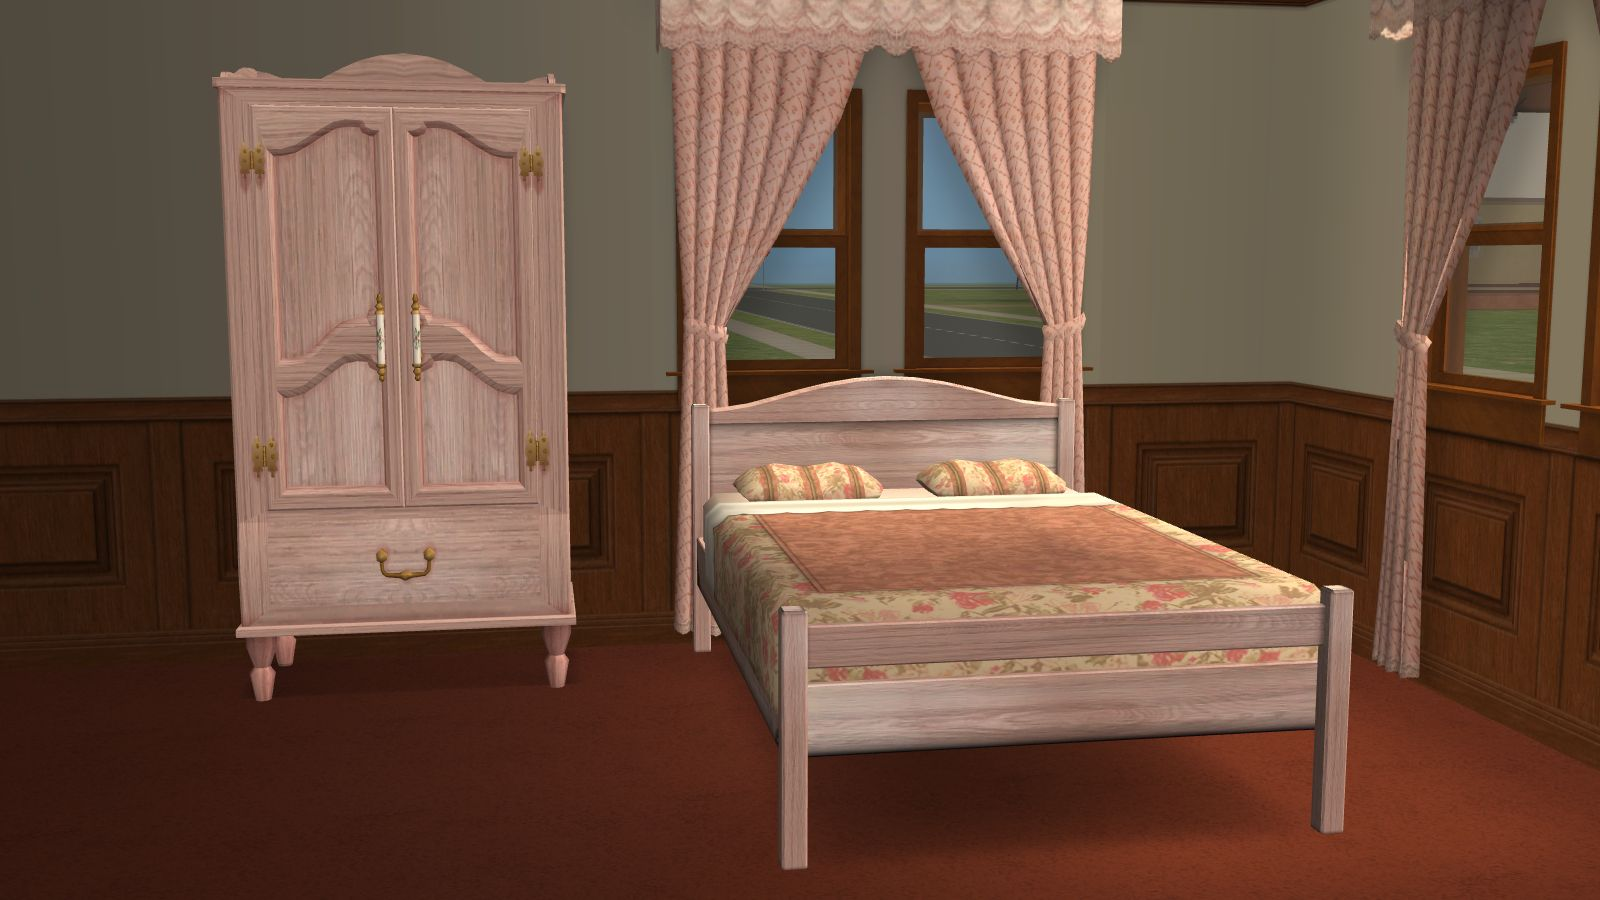 Mod the sims recolors of an ofb dresser matching cheap for Matching bed and dresser